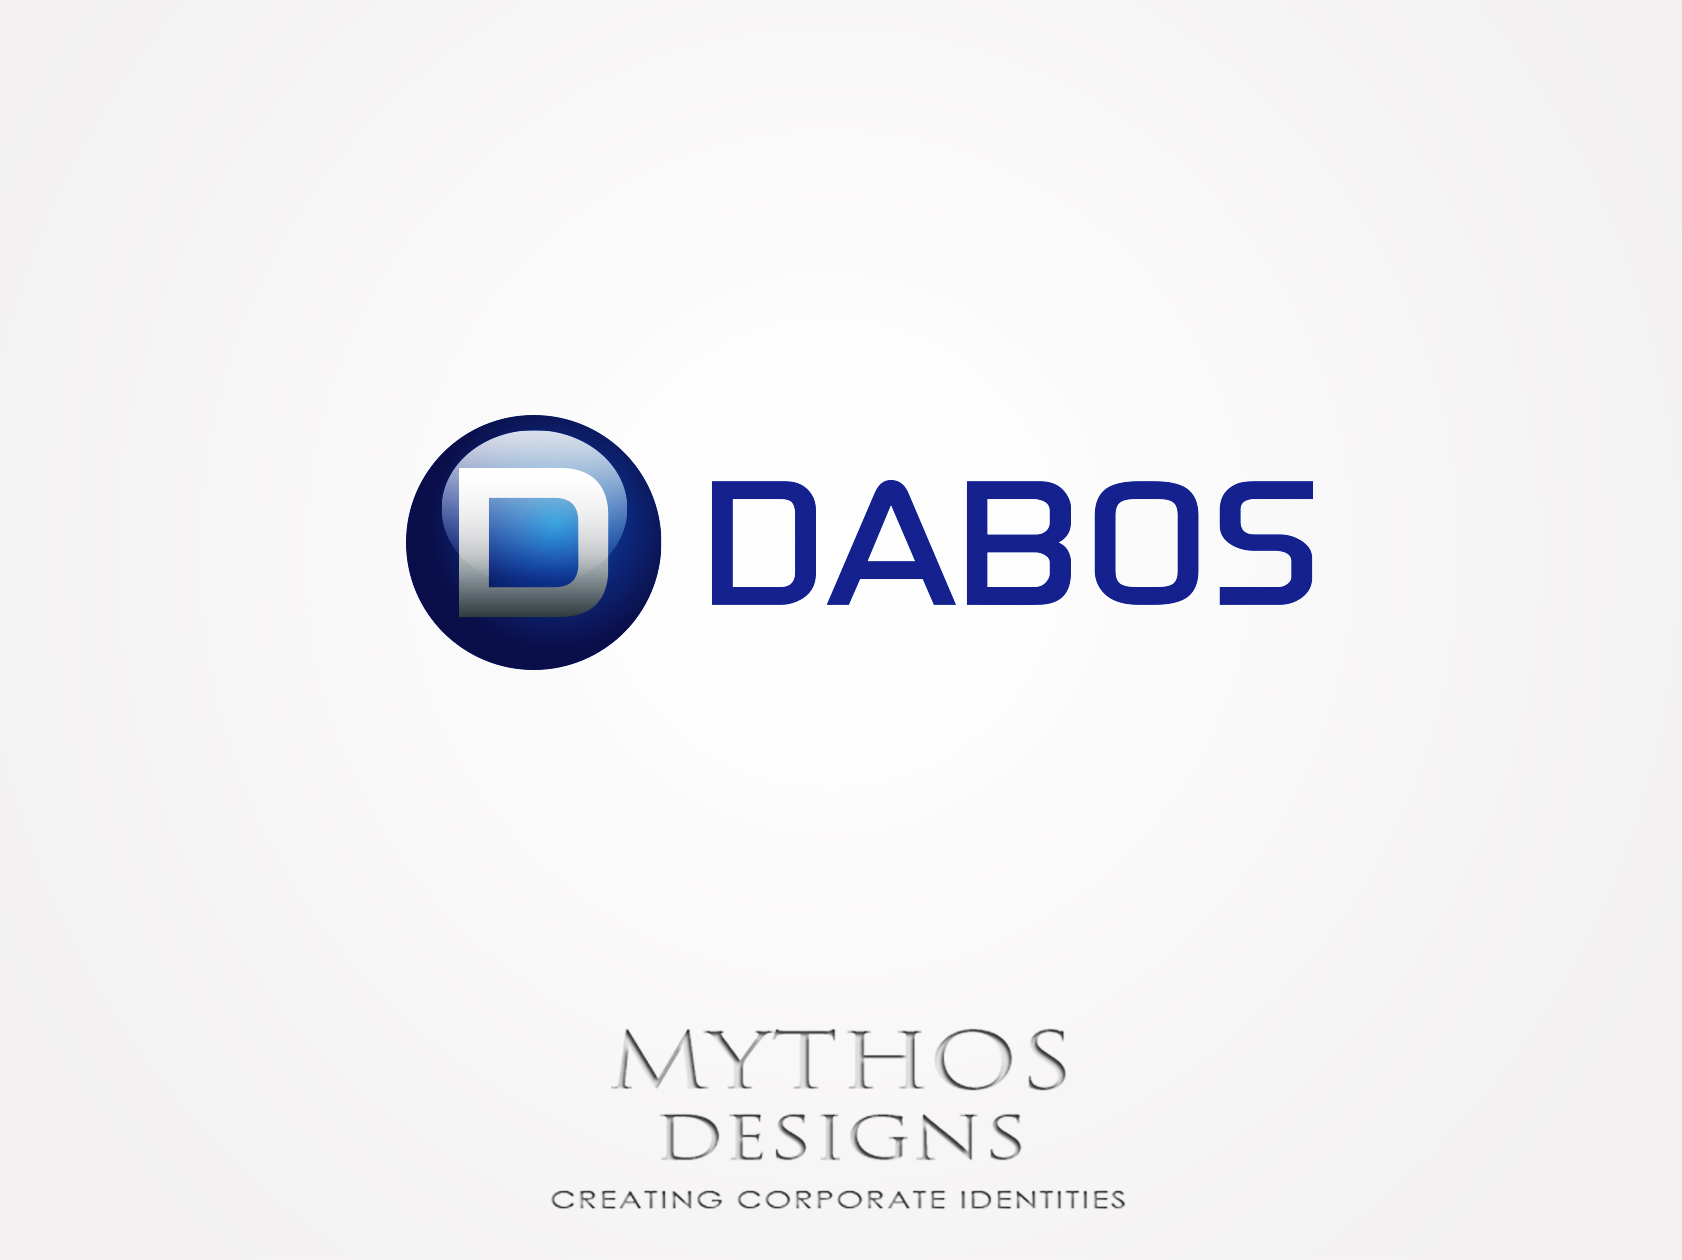 Logo Design by Mythos Designs - Entry No. 156 in the Logo Design Contest Imaginative Logo Design for DABOS, Limited Liability Company.